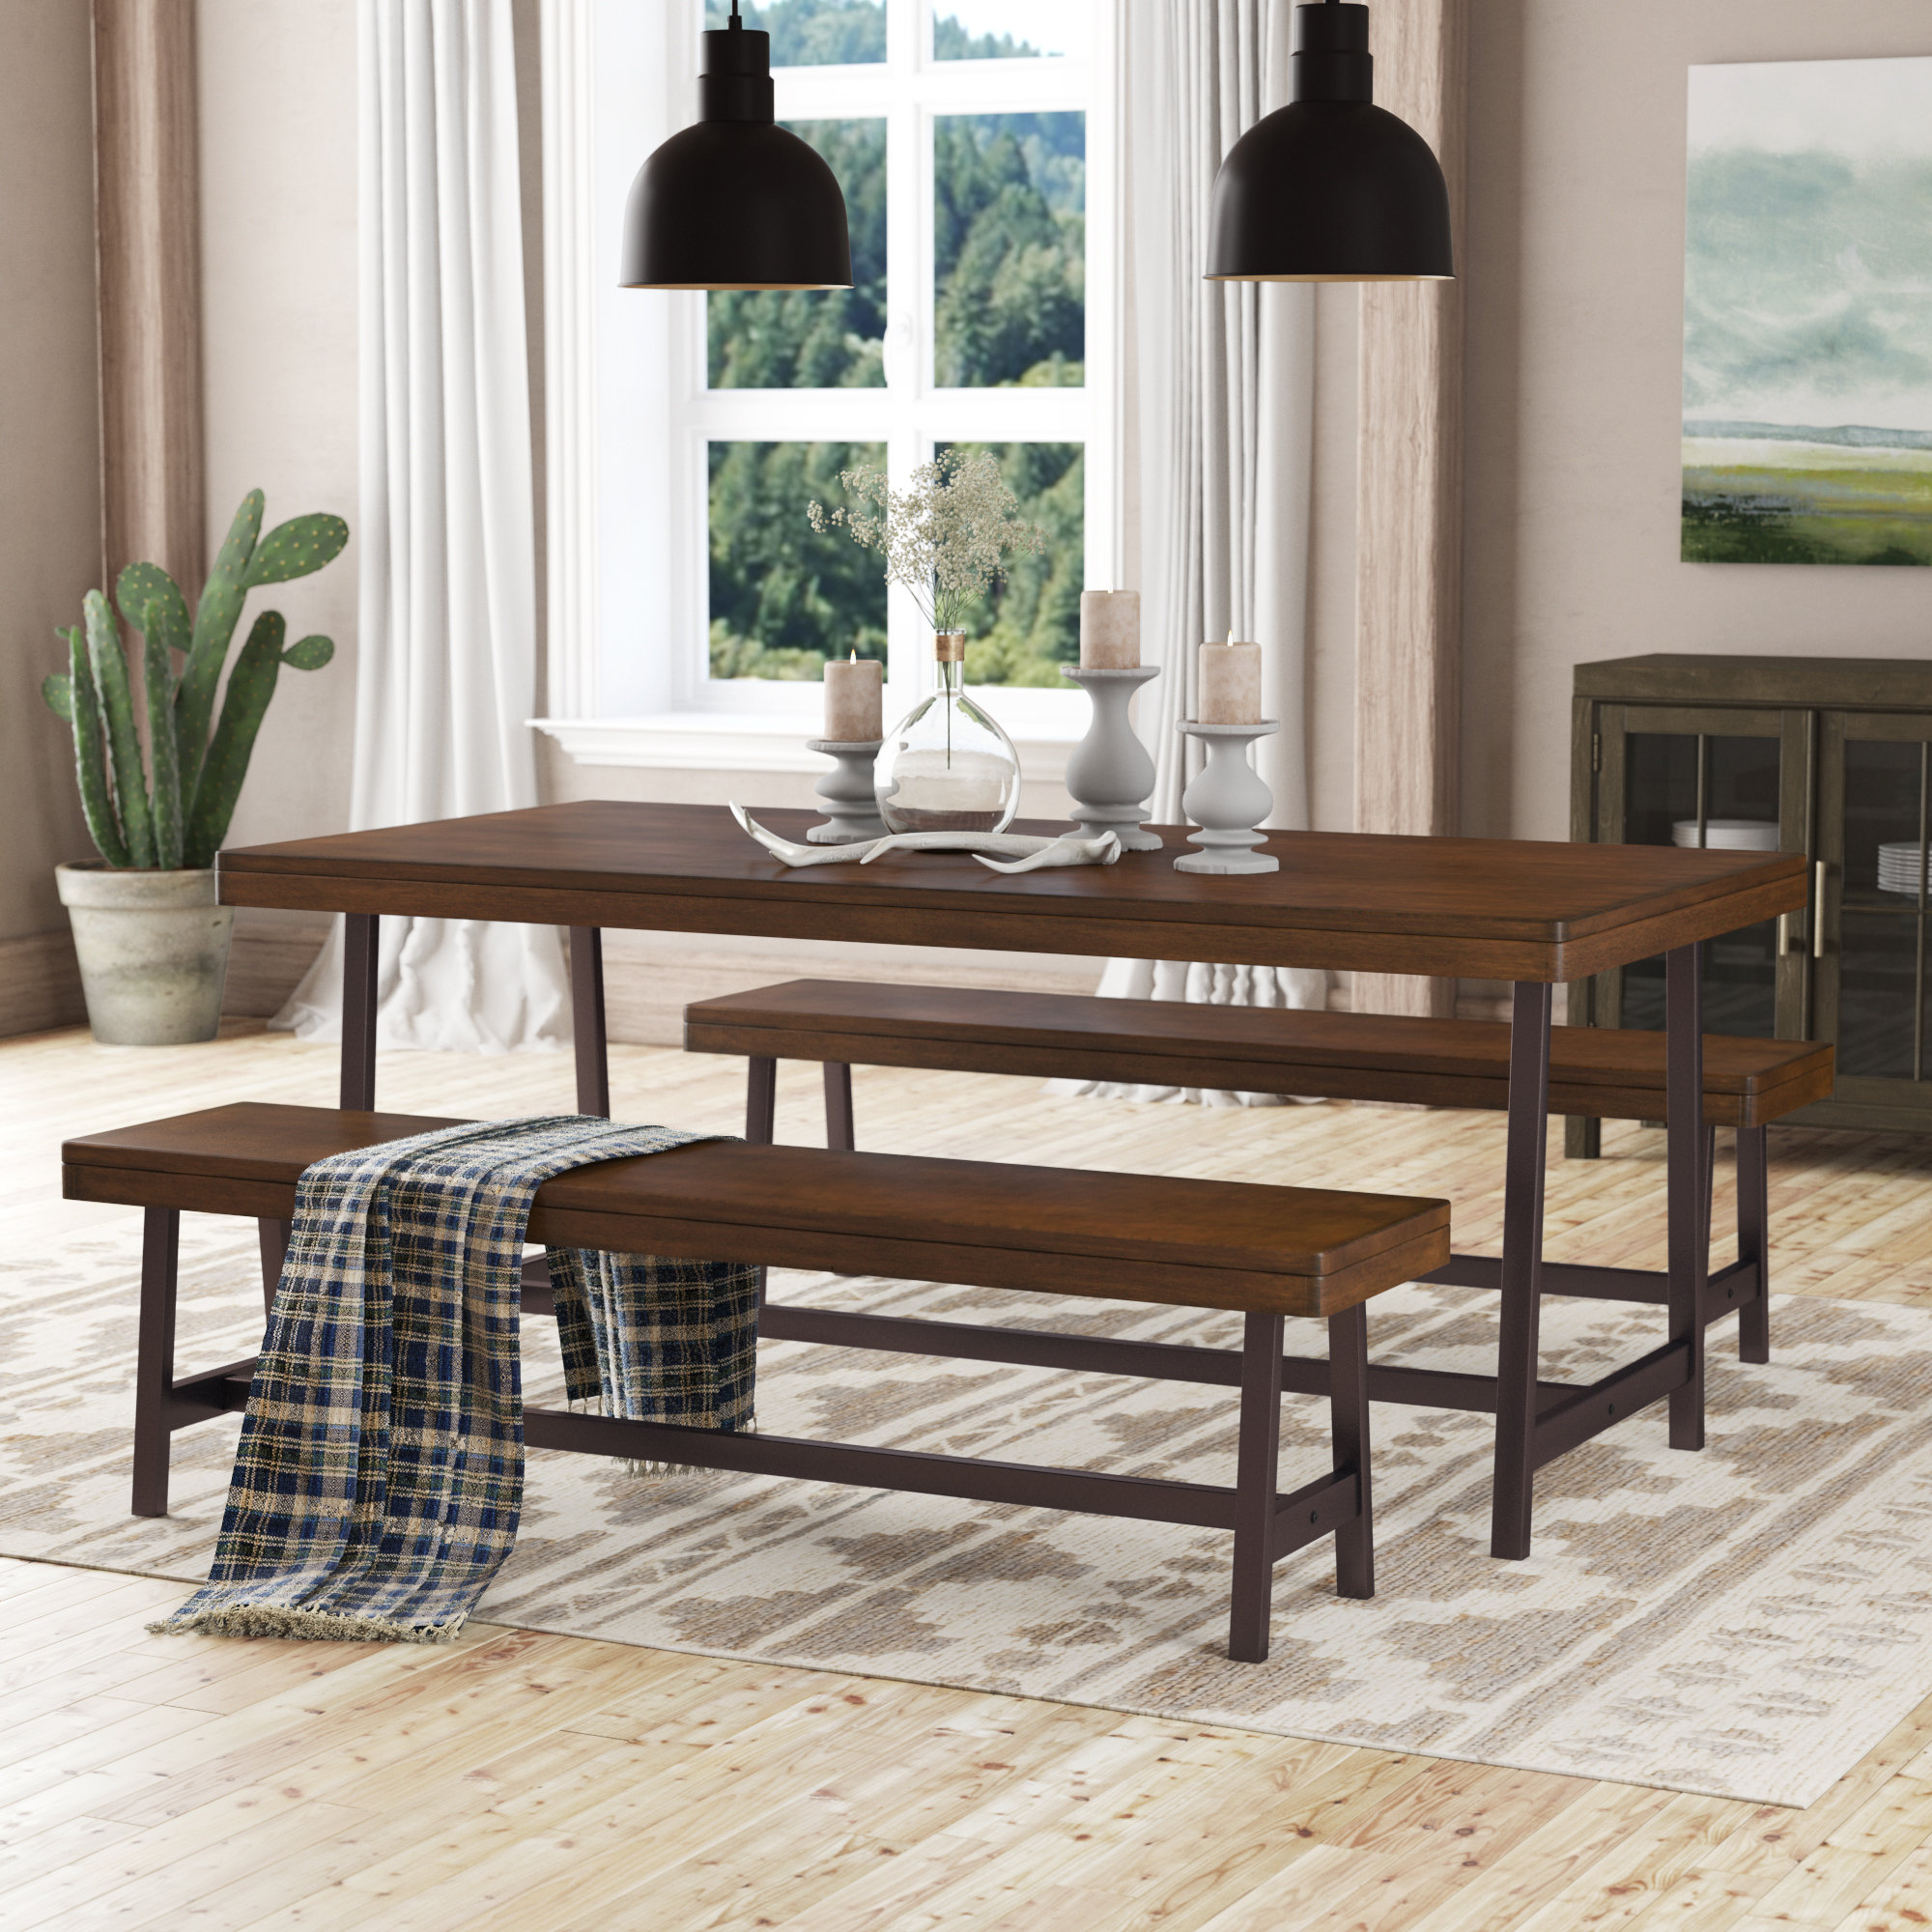 Frida 3 Piece Dining Table Sets For 2020 Loon Peak Huntington 3 Piece Dining Set & Reviews (View 14 of 25)